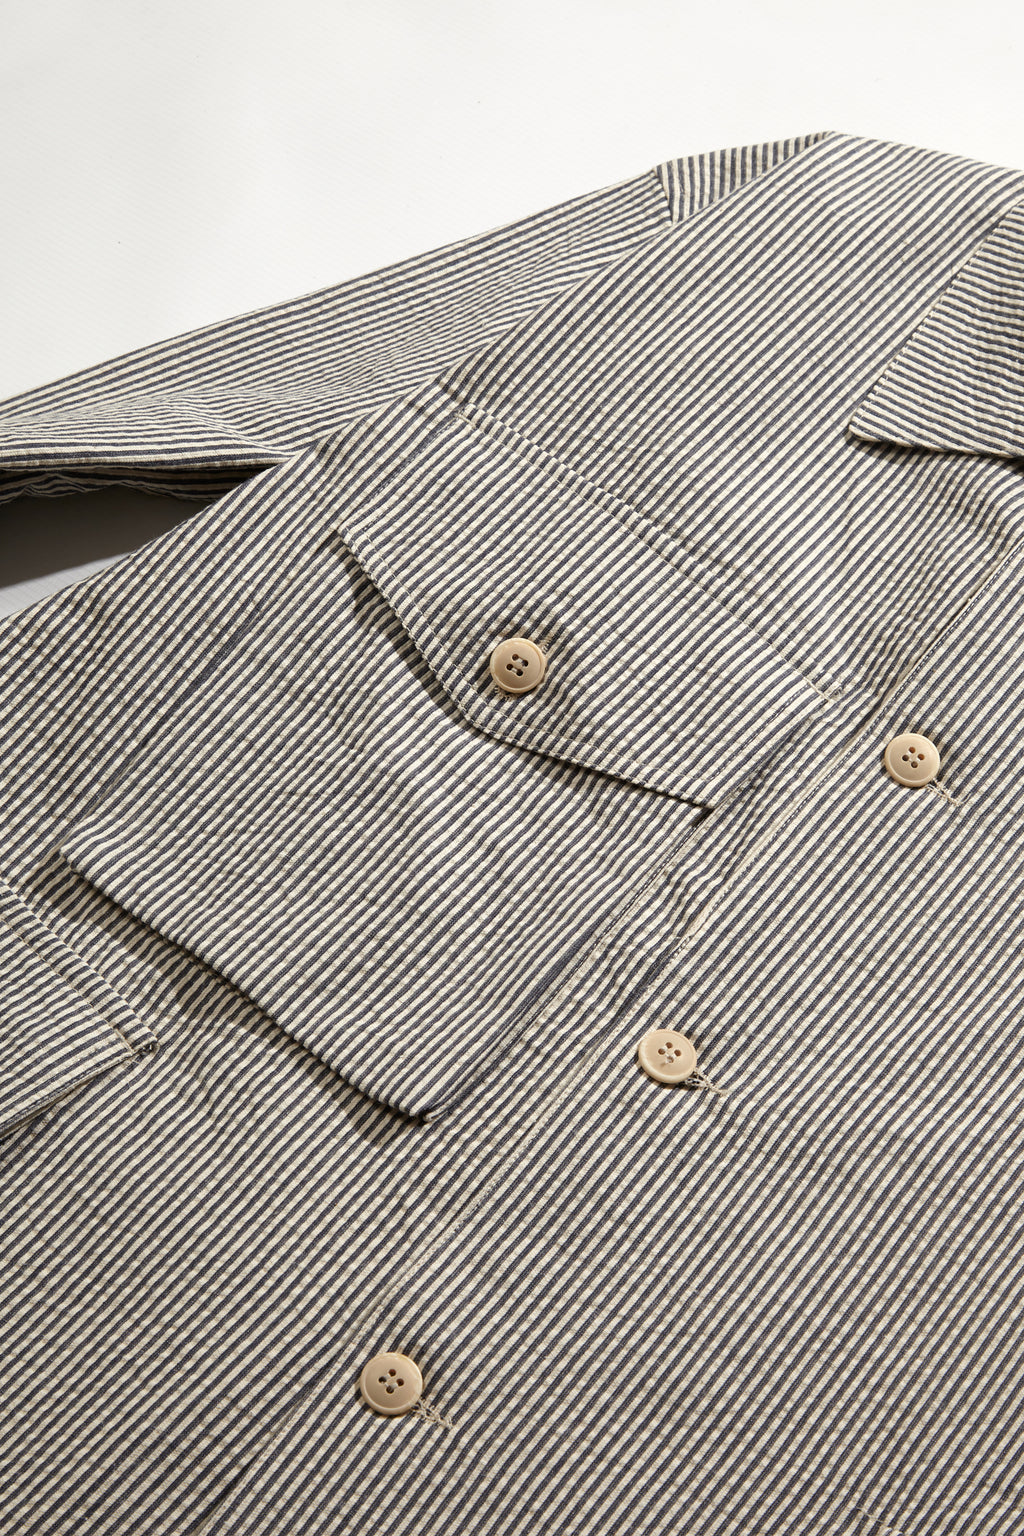 Blacksmith - Seersucker Chore Overshirt - Navy